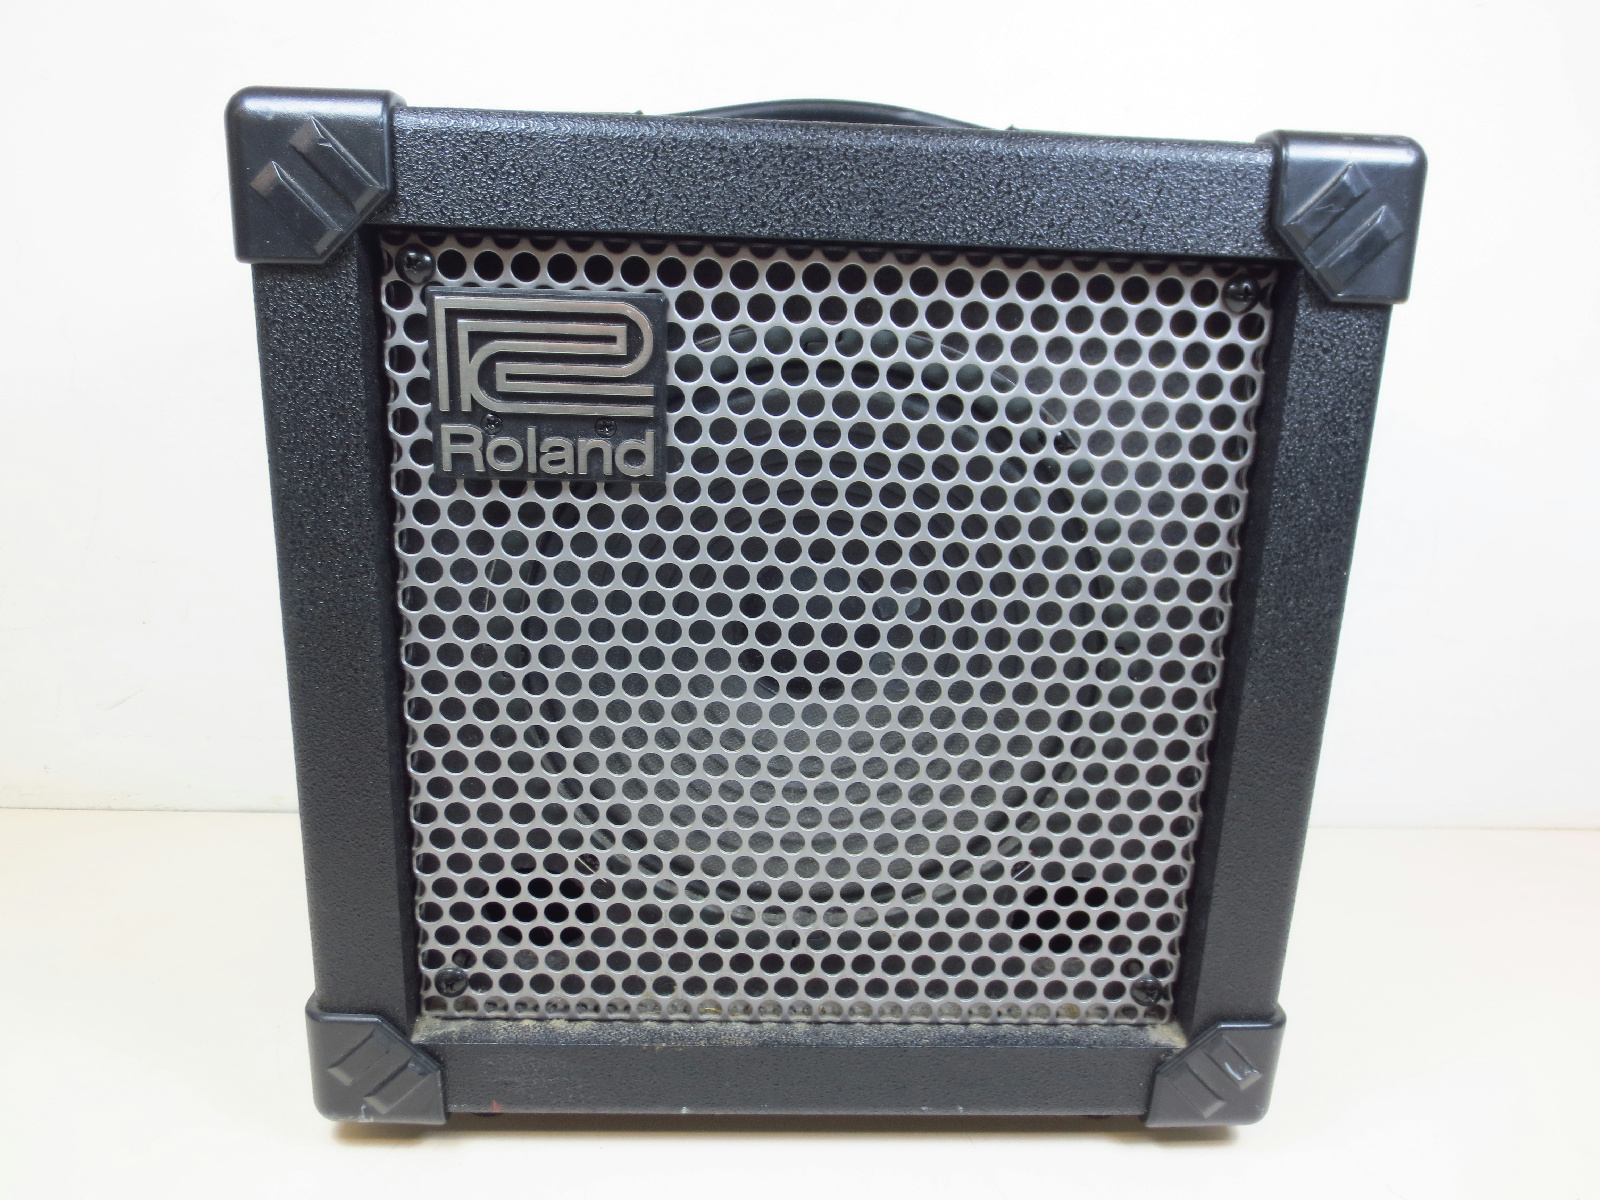 roland cube 15x 15 watt guitar amp tested ebay. Black Bedroom Furniture Sets. Home Design Ideas